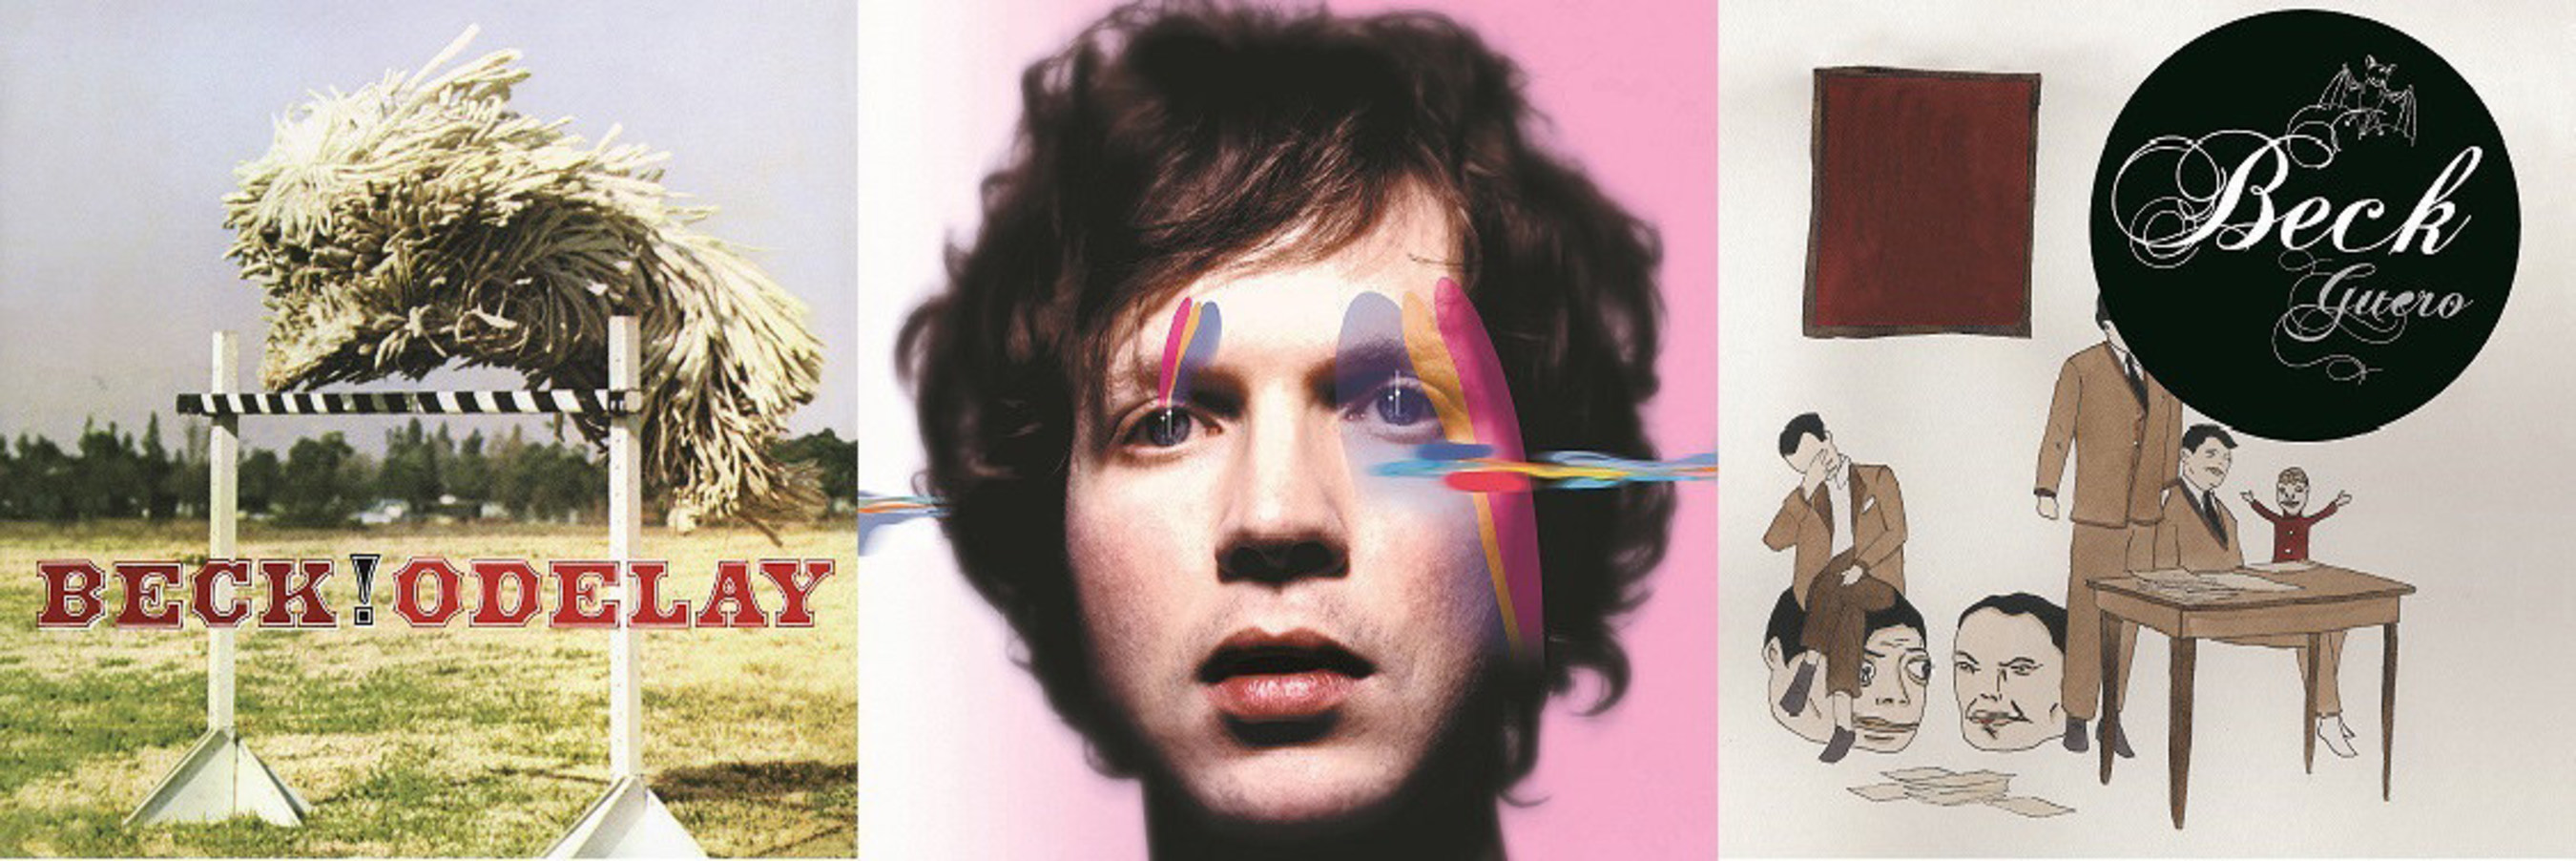 This fall, UMe will begin to reissue Beck's entire envelope-pushing DGC/Geffen/Interscope catalog on vinyl, beginning on October 28 with the trifecta of his 1996 GRAMMY(R) Award-winning single LP game-changer, 'Odelay,' 2002's beautiful, brokenhearted, 'Sea Change,' and 2005's tour de force, 'Guero.'